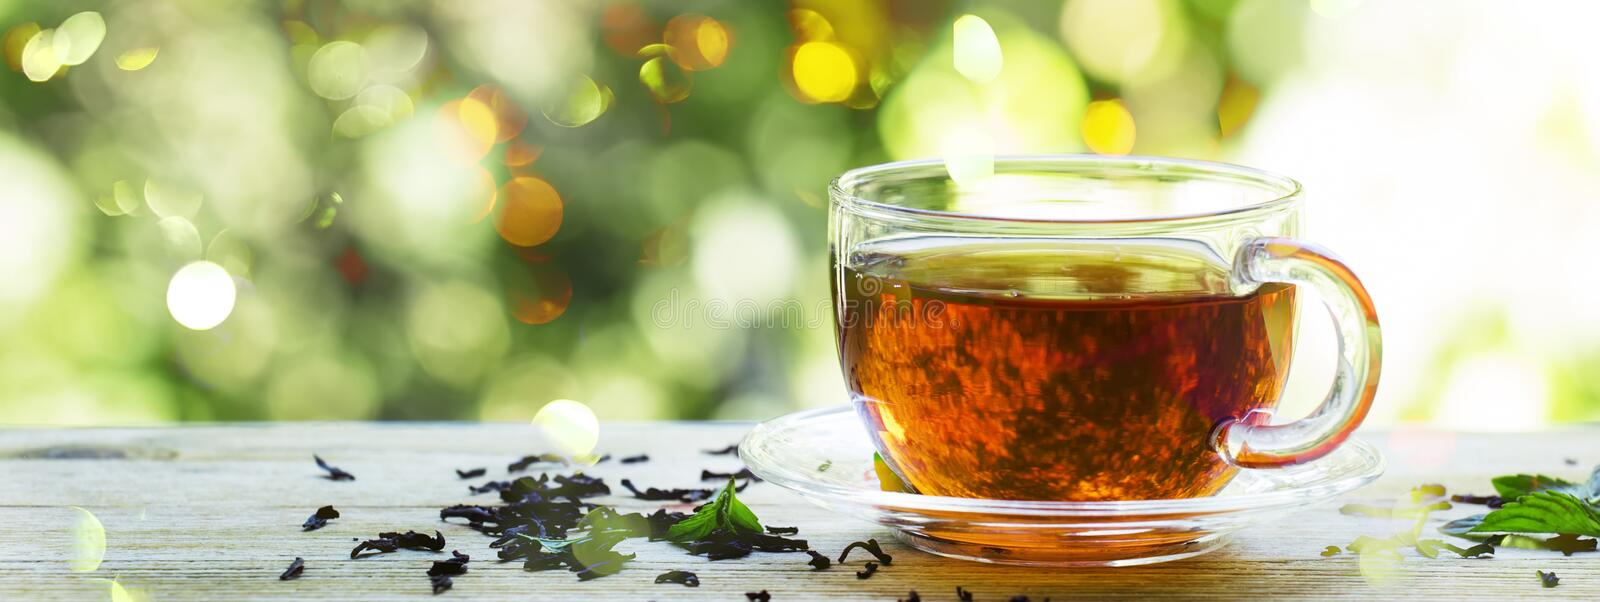 Cup of black tea on the nature summer background, selective focus, copy space, banner royalty free stock photo